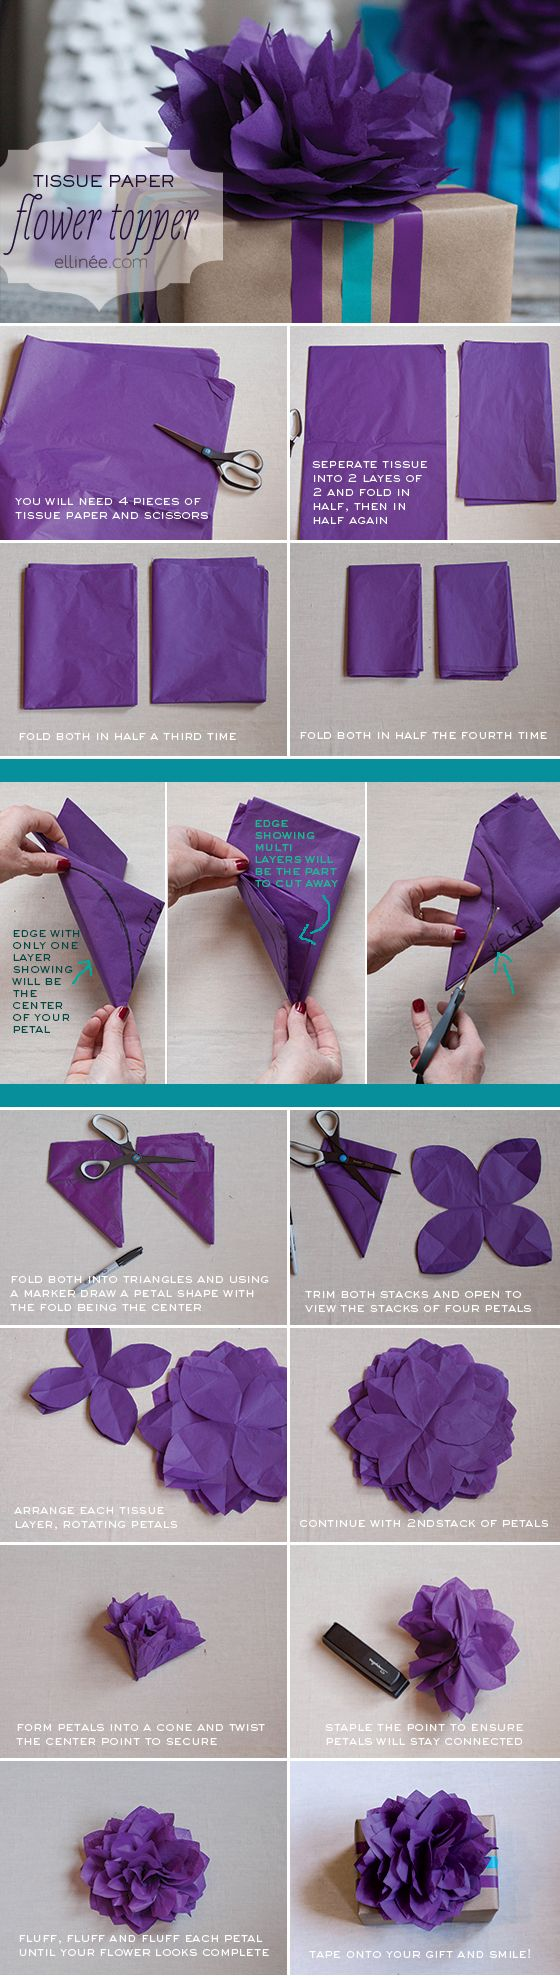 DIY Tissue Paper Topper Tutorial | The Elli Blog